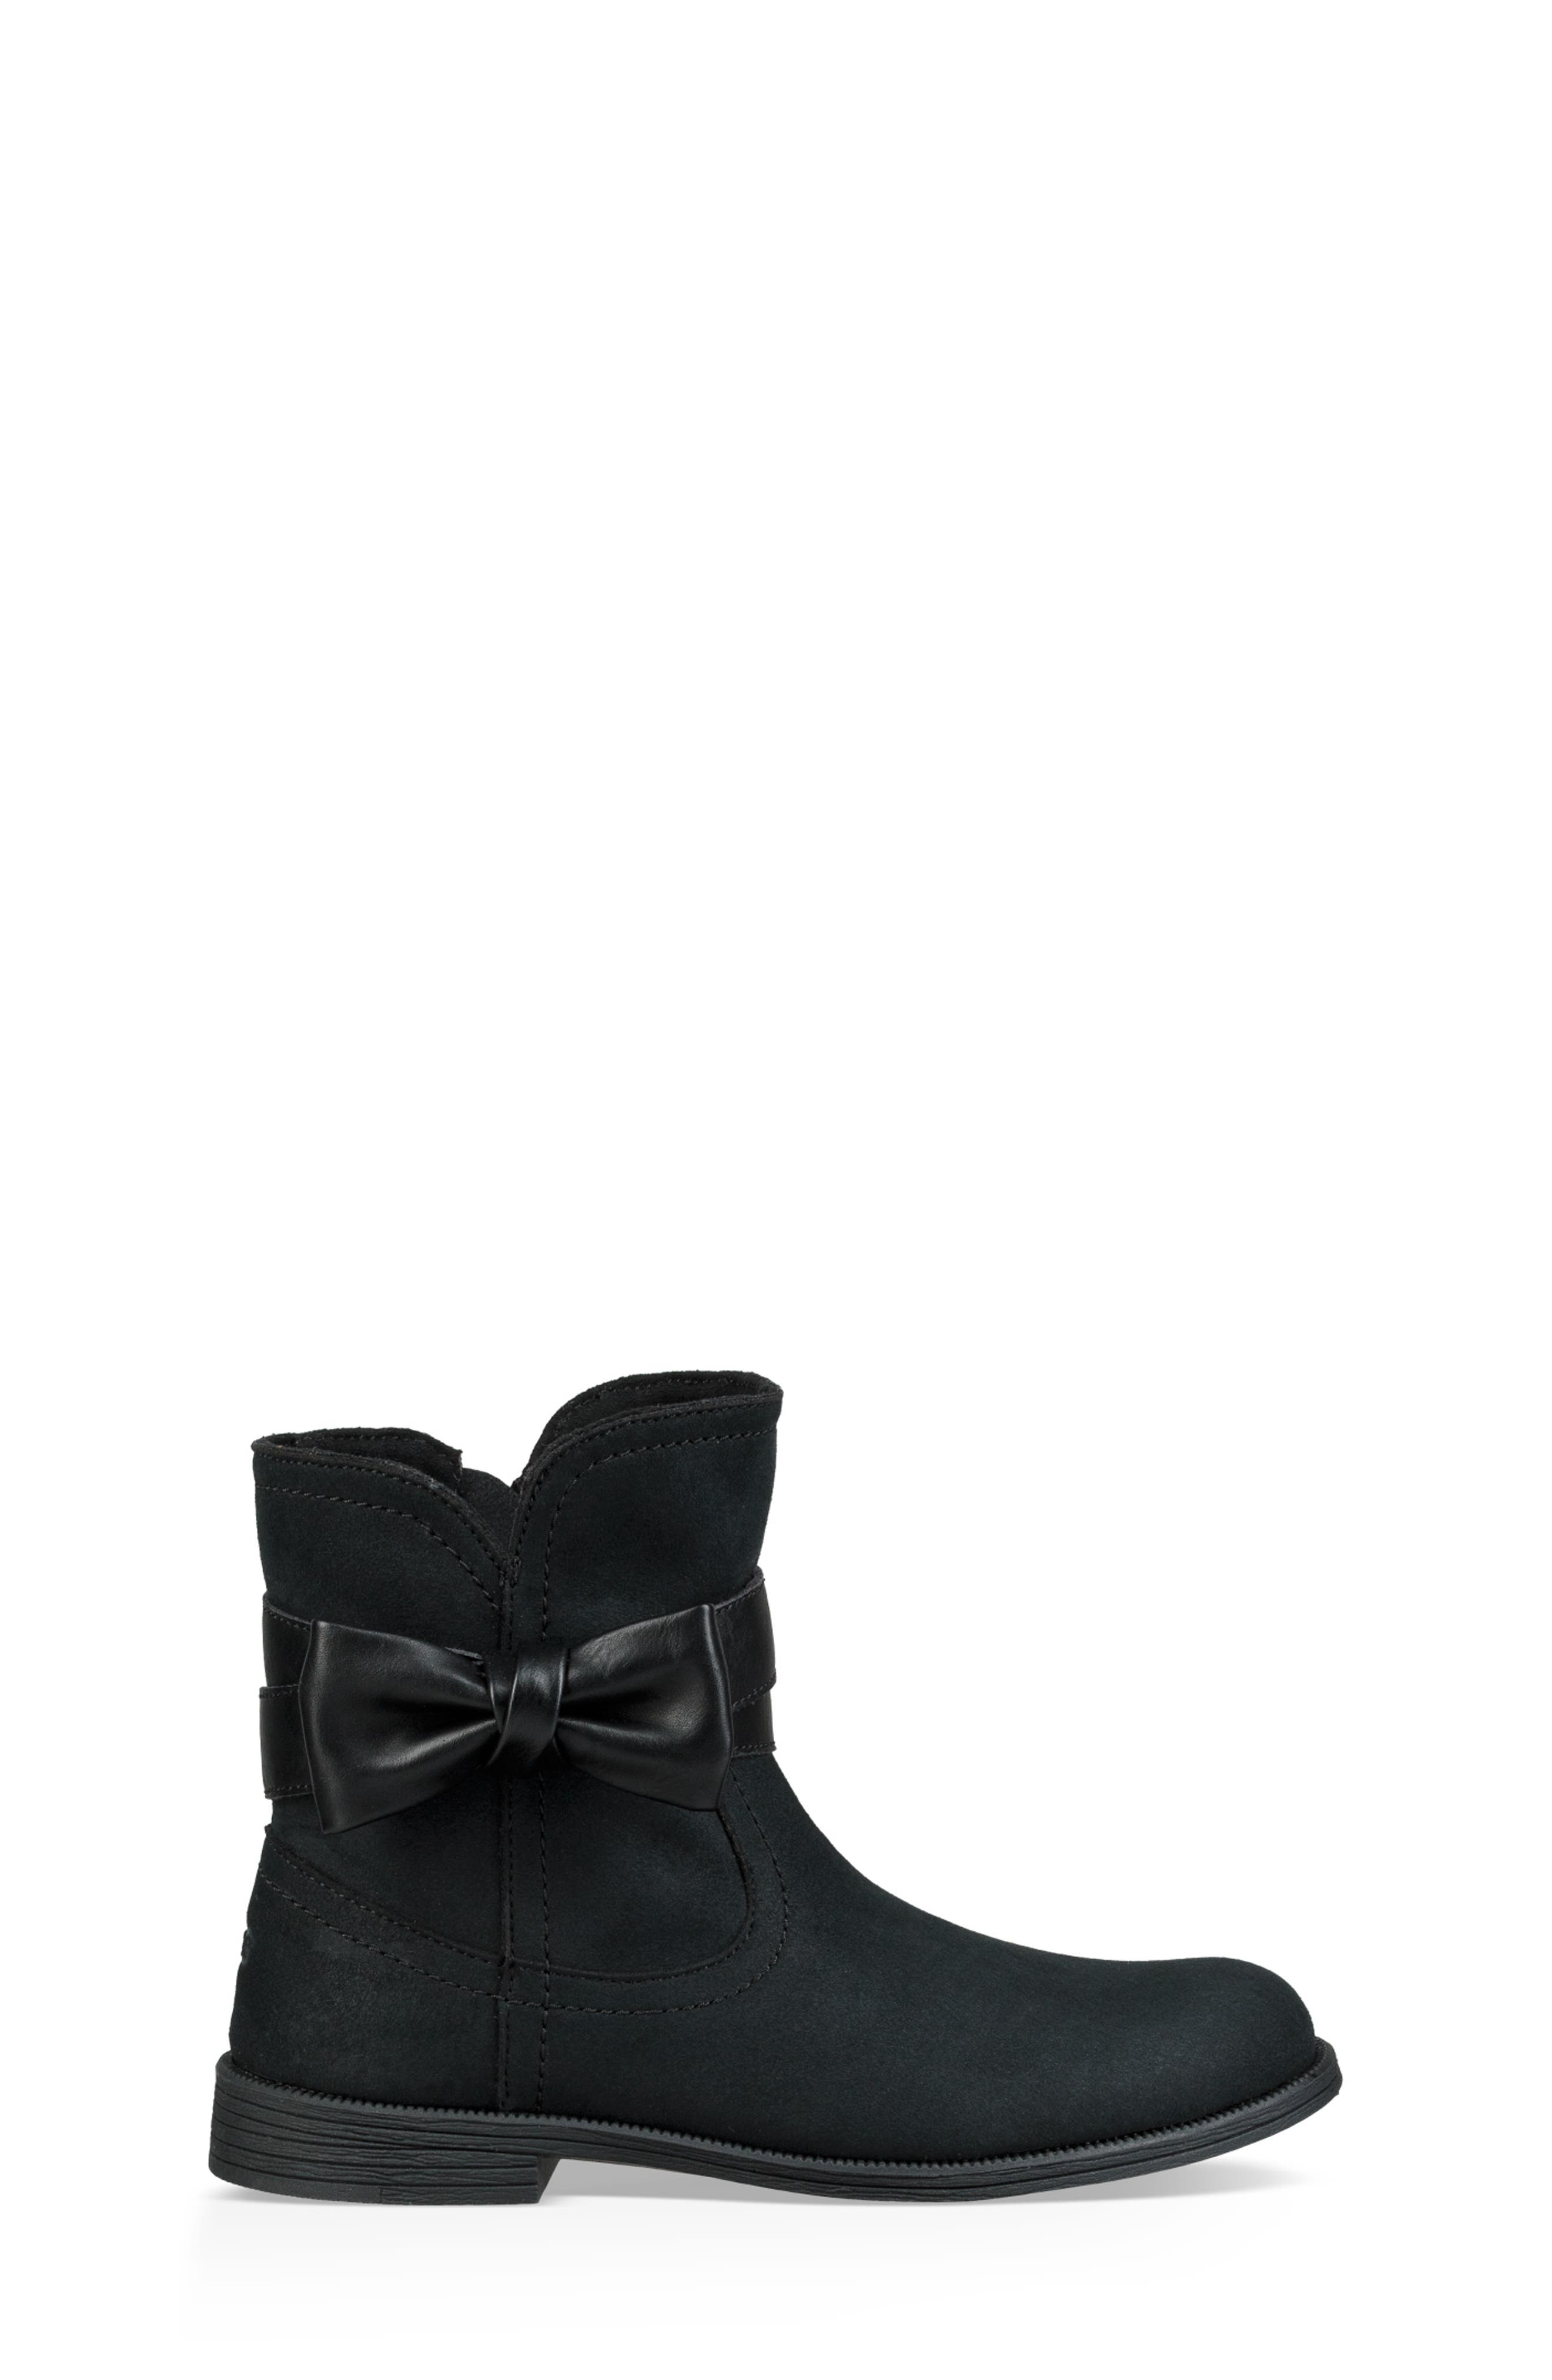 UGG Joanie Bow Boot,                             Alternate thumbnail 3, color,                             BLACK